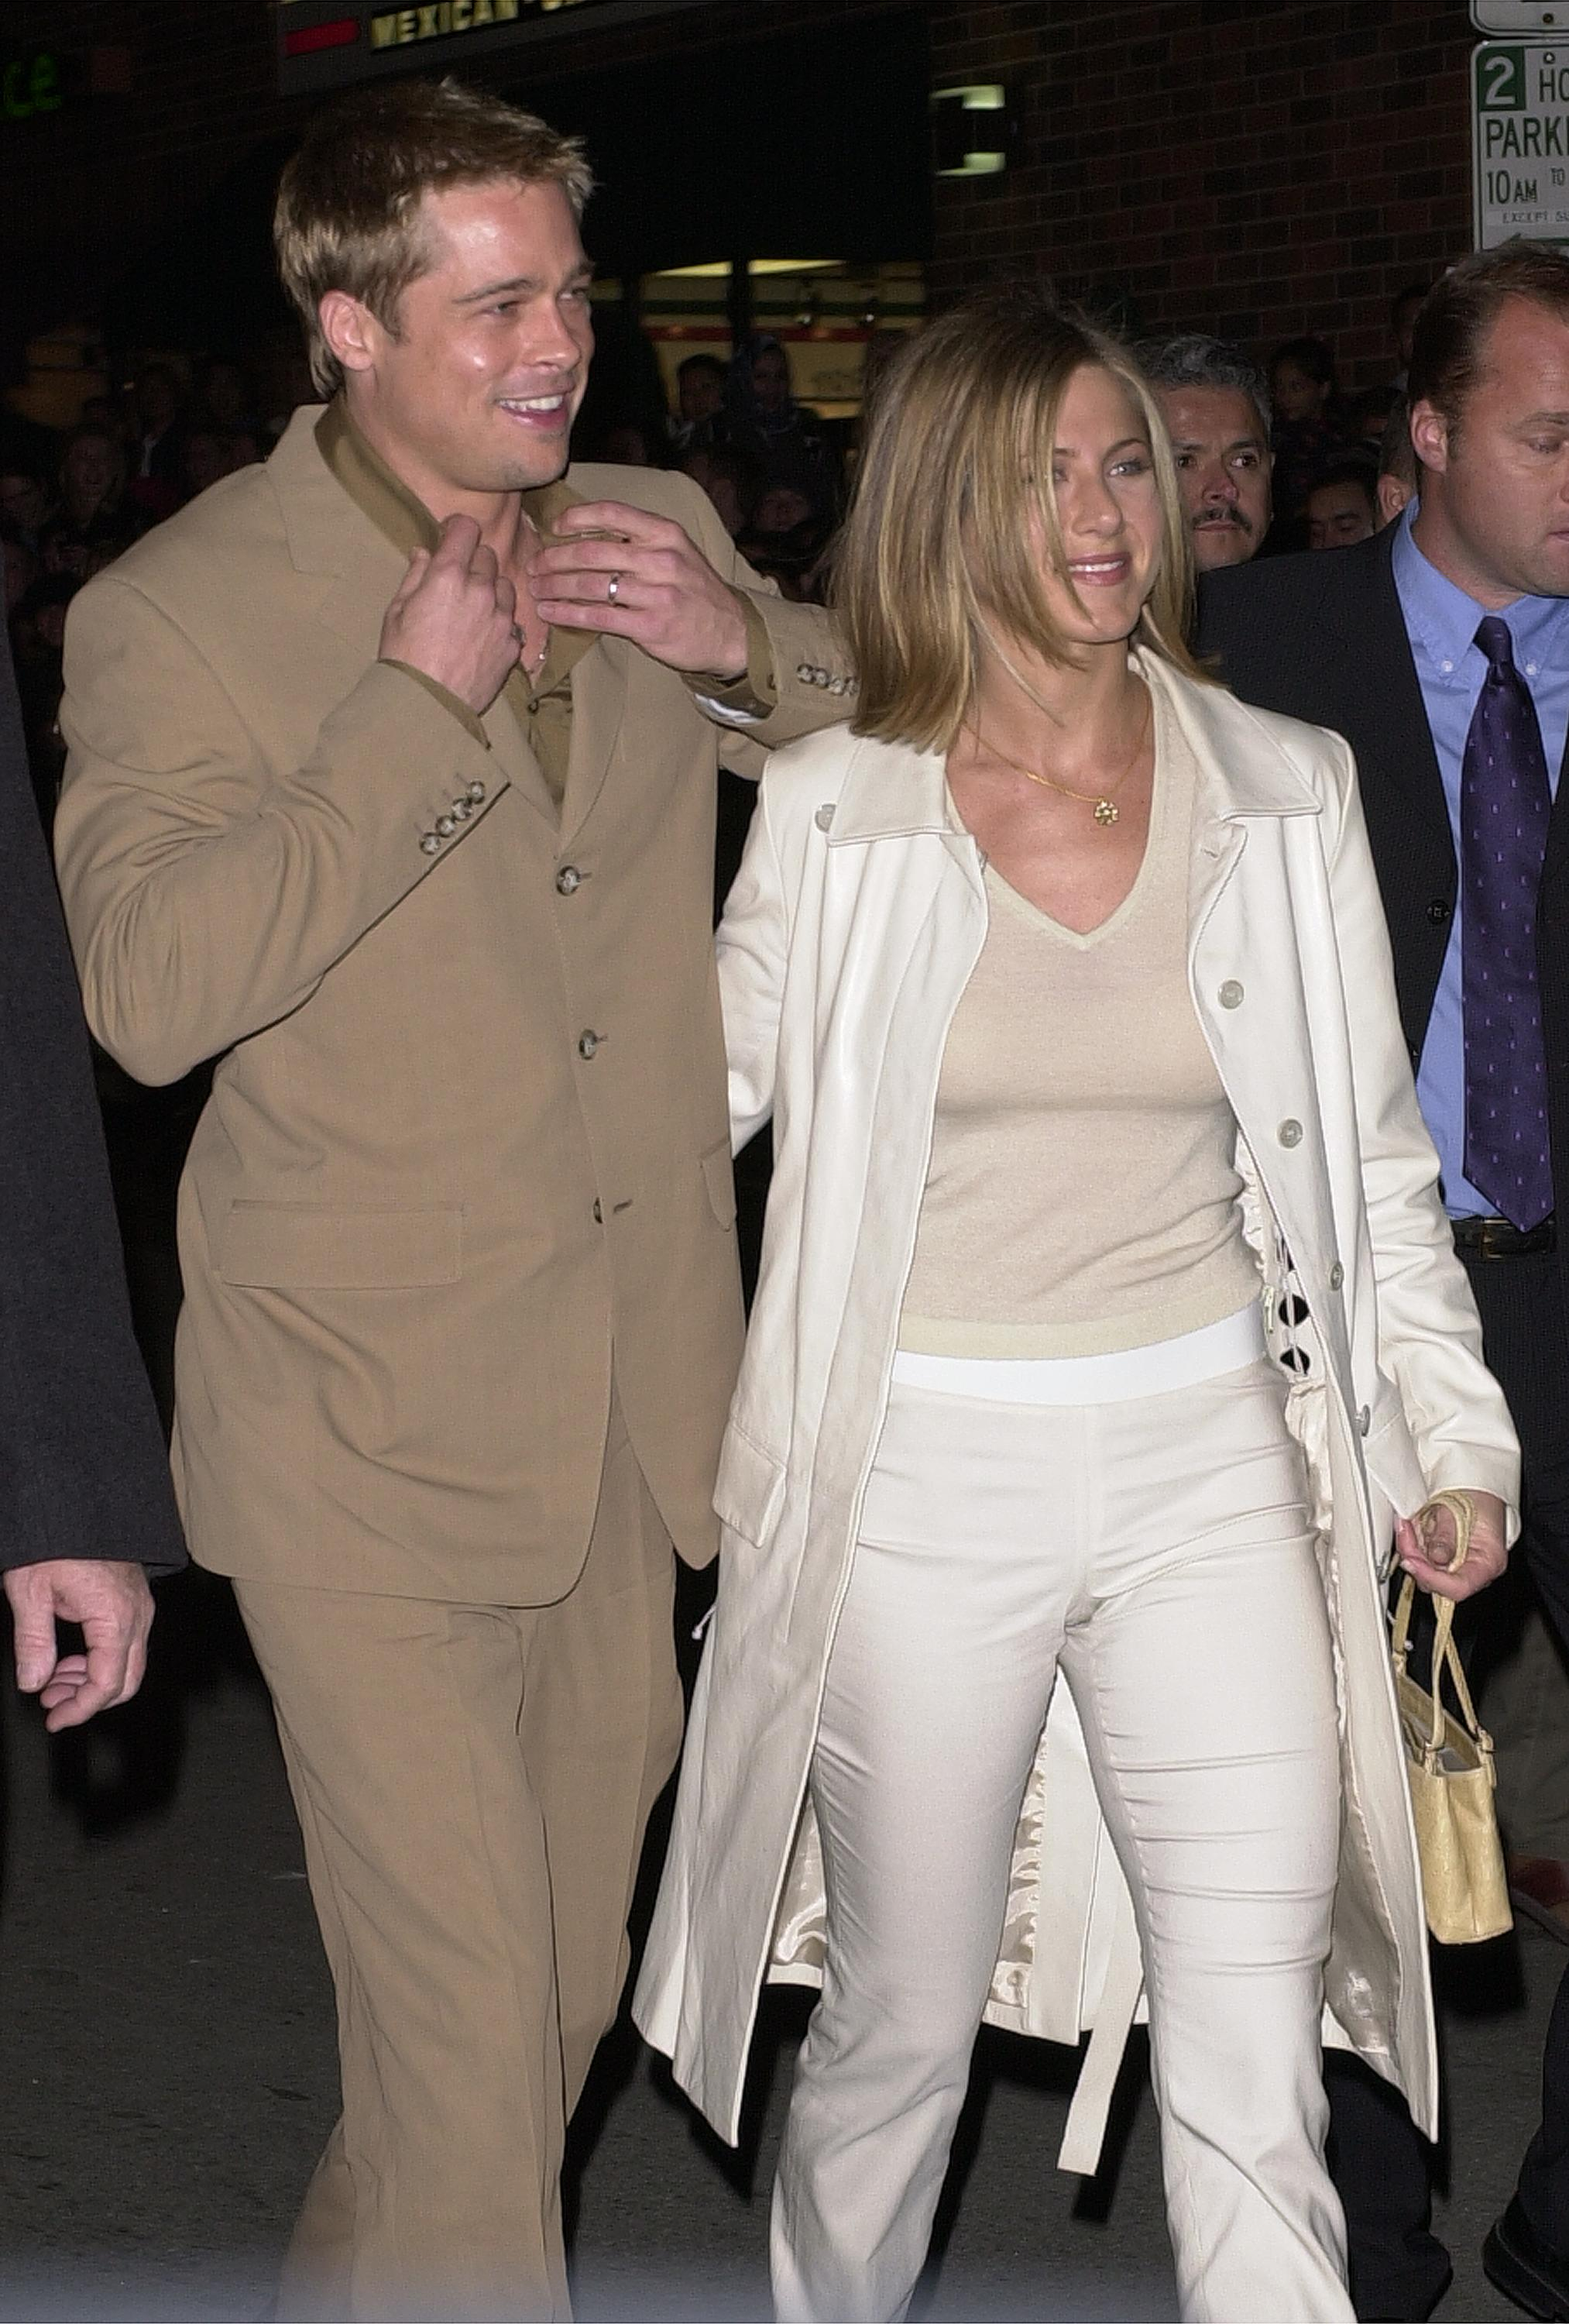 Actors Brad Pitt and wife Jennifer Aniston arrive for the premiere of 'The Mexican' February 23, 2001 in Westwood, CA. (Photo by Vince Bucci/Newsmakers)